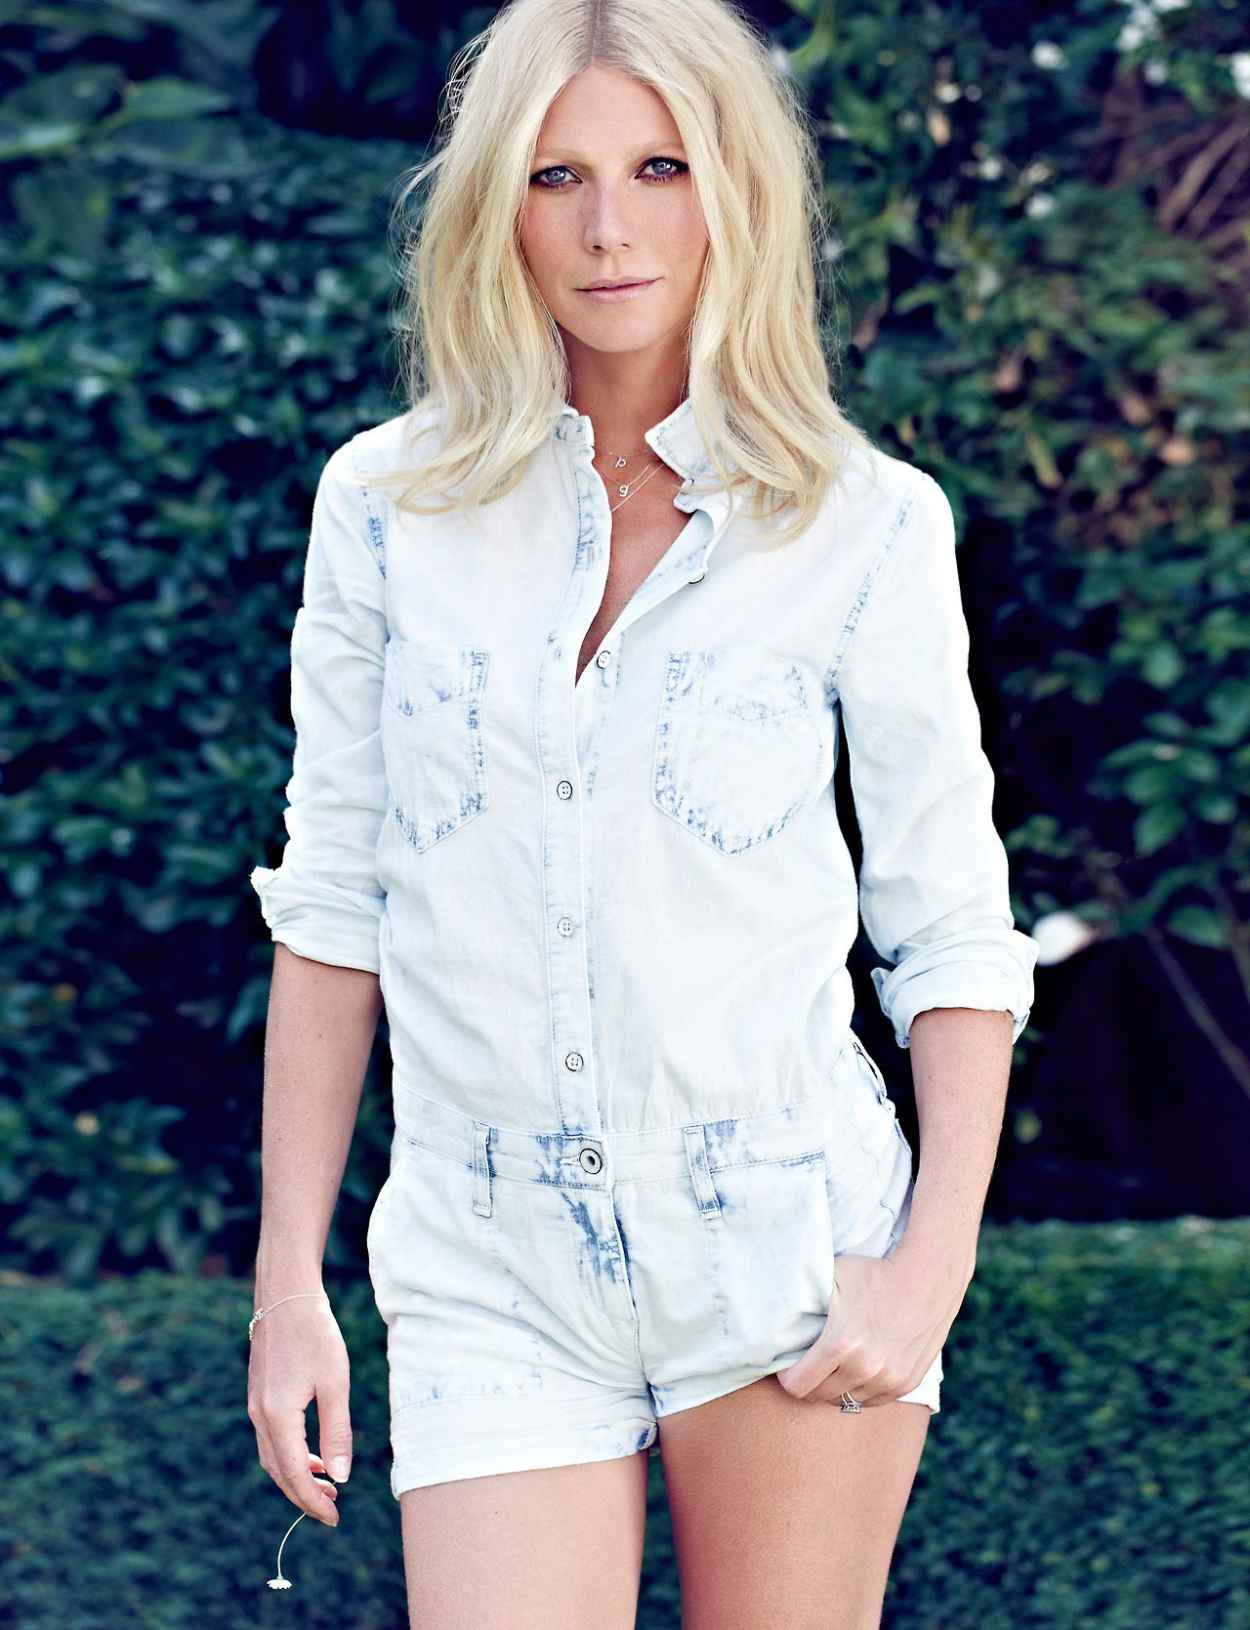 Gwyneth Paltrow - Max Abadian Photoshoot for RED Magazine - September 2015-1